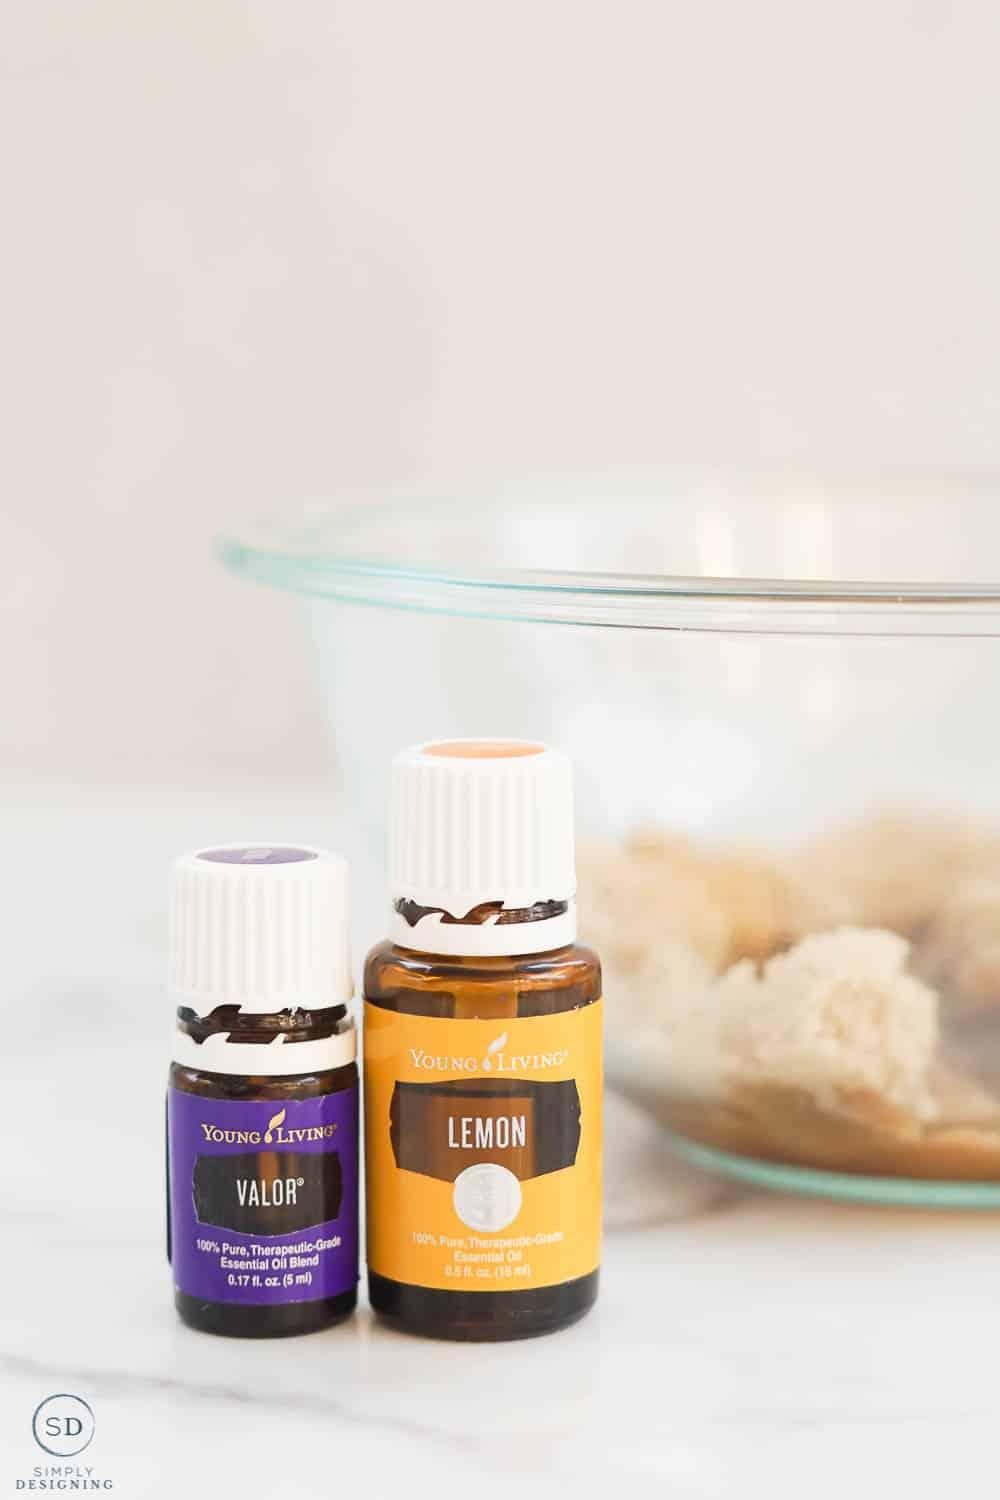 lemon and valor essential oil sitting in front of a glass bowl with brown sugar in it